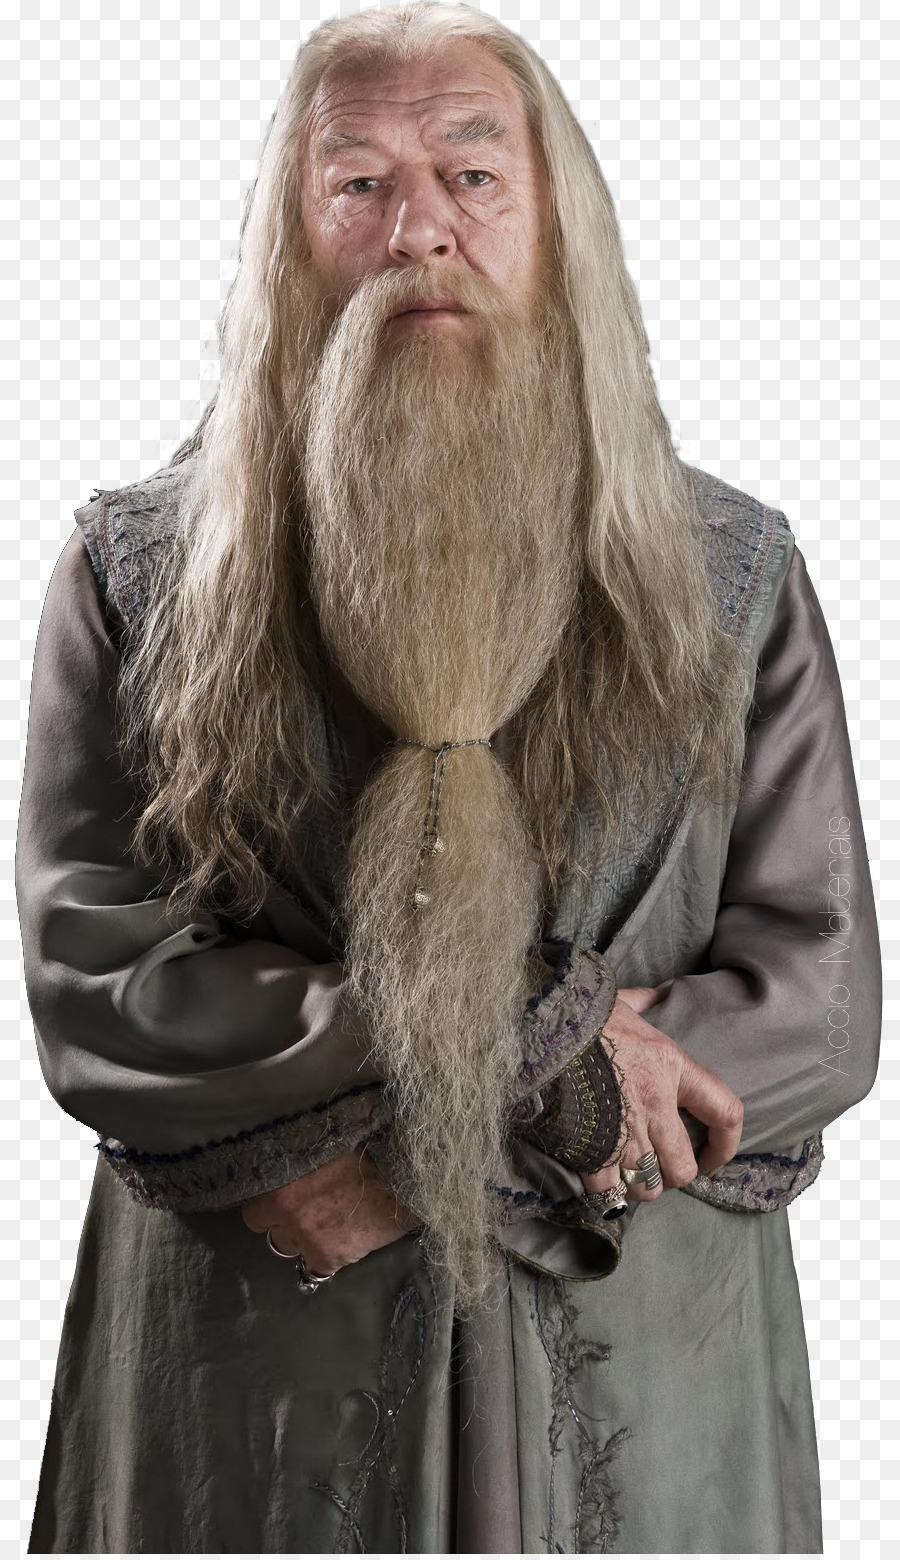 Albus Dumbledore Png & Free Albus Dumbledore.png Transparent Images.